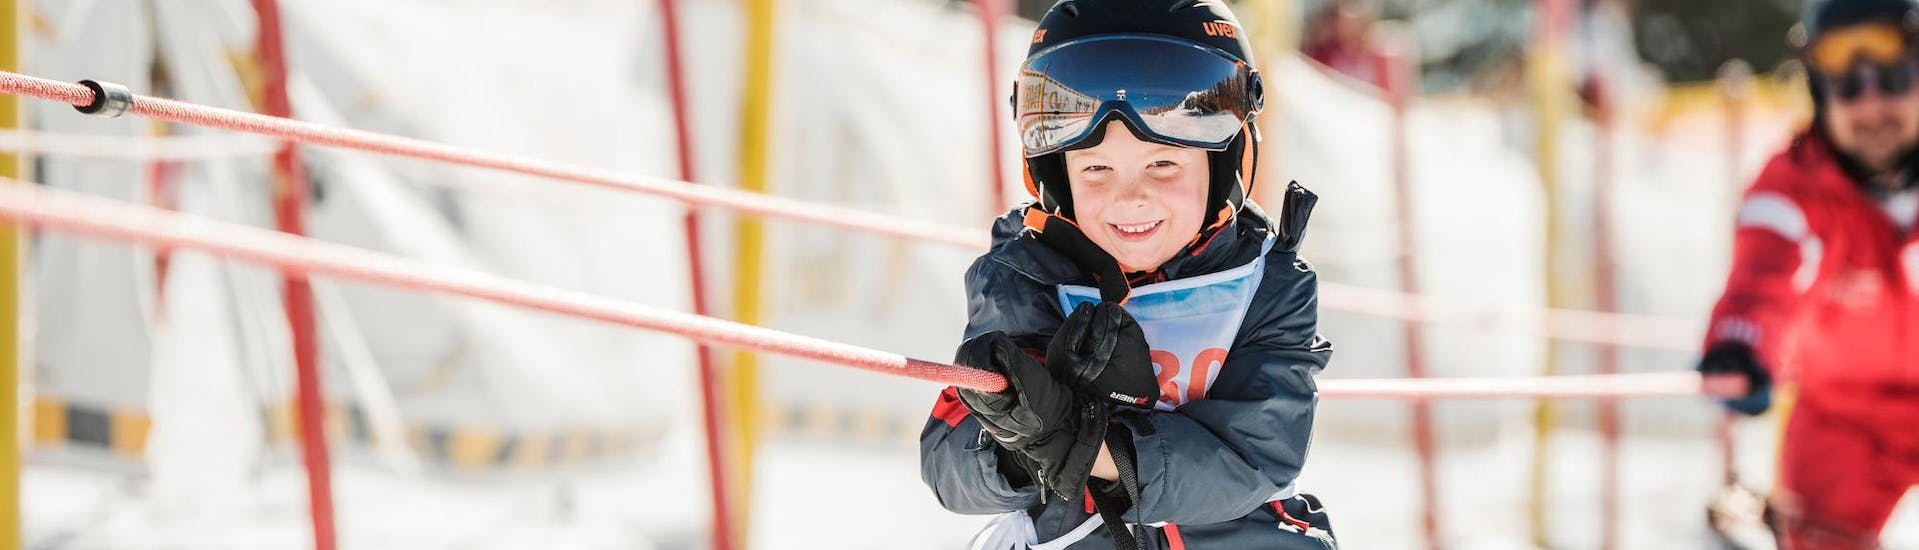 """Kids Ski Lessons MAX 4 """"All-in-One"""" (4-6 y.) with Skischule Busslehner Achenkirch - Hero image"""